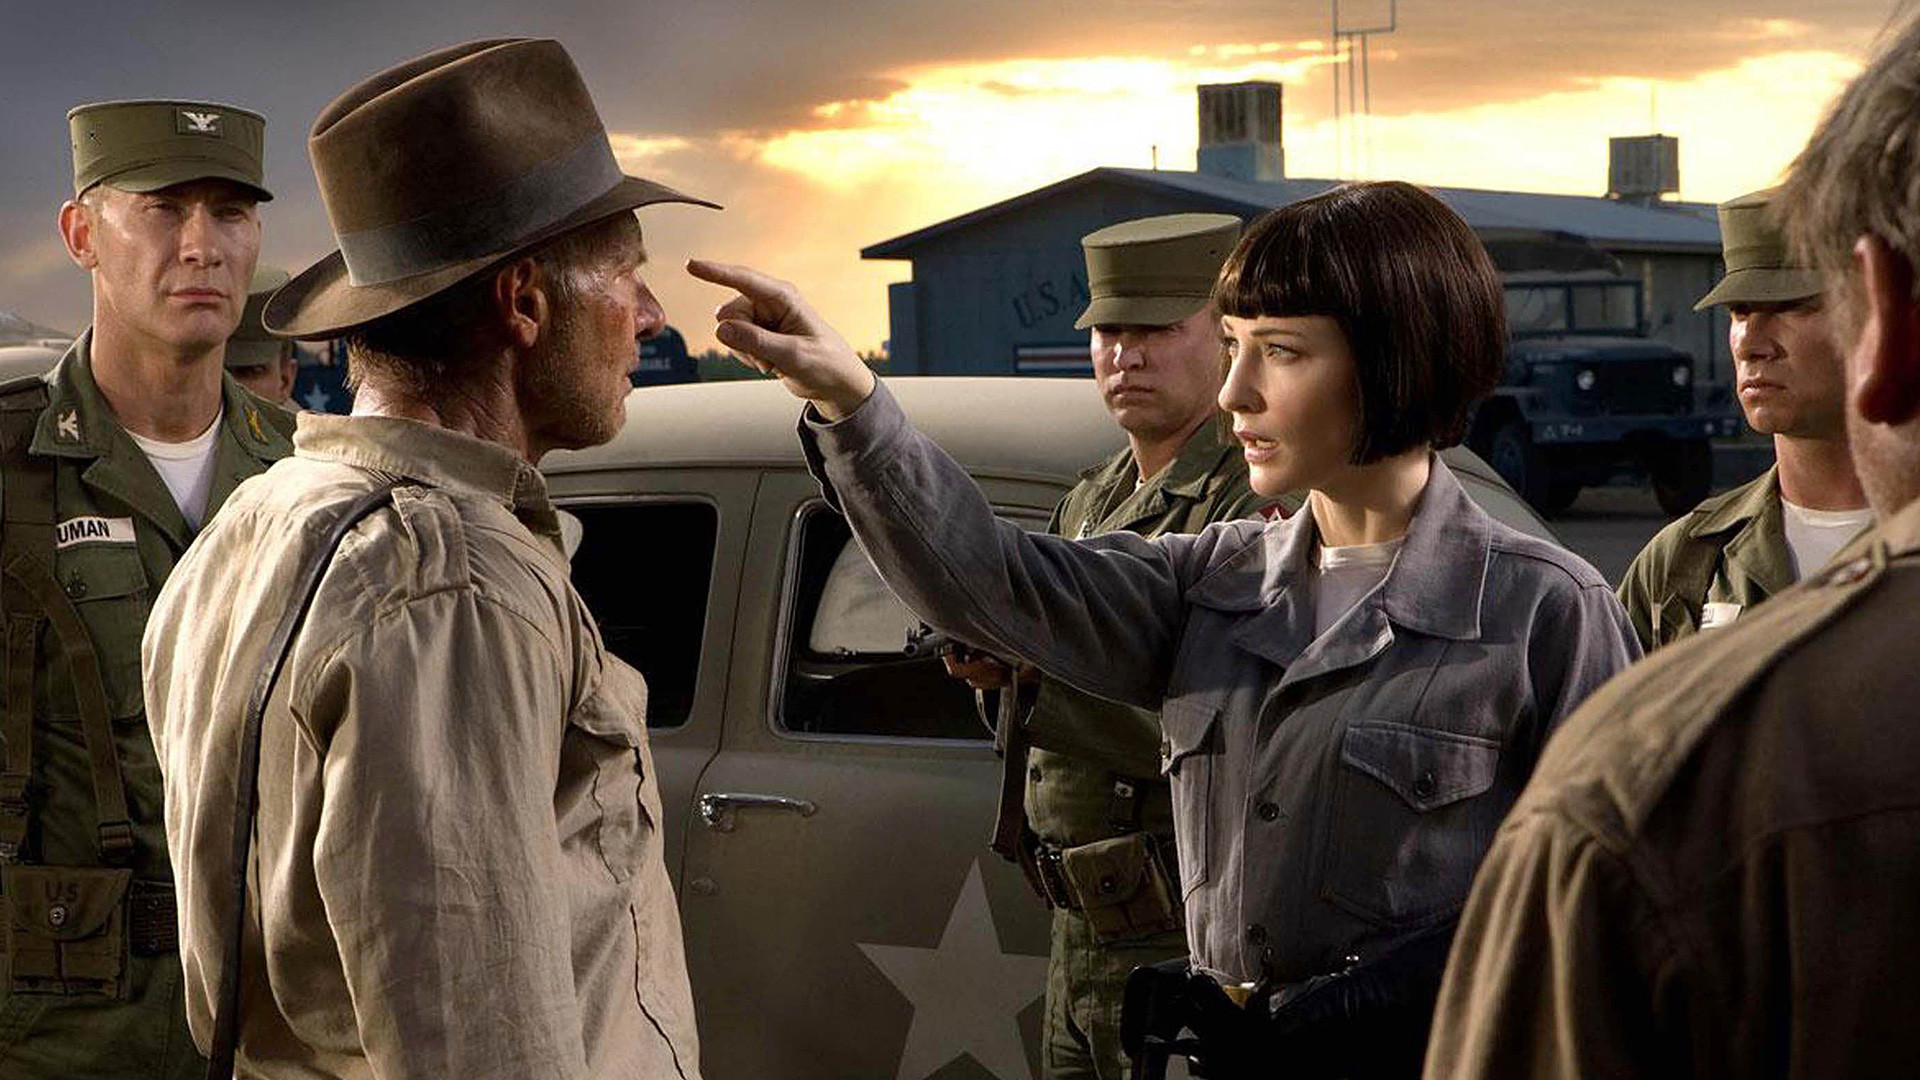 Irina Spalko, Indiana Jones and the Kingdom of the Crystal Skull (2008)